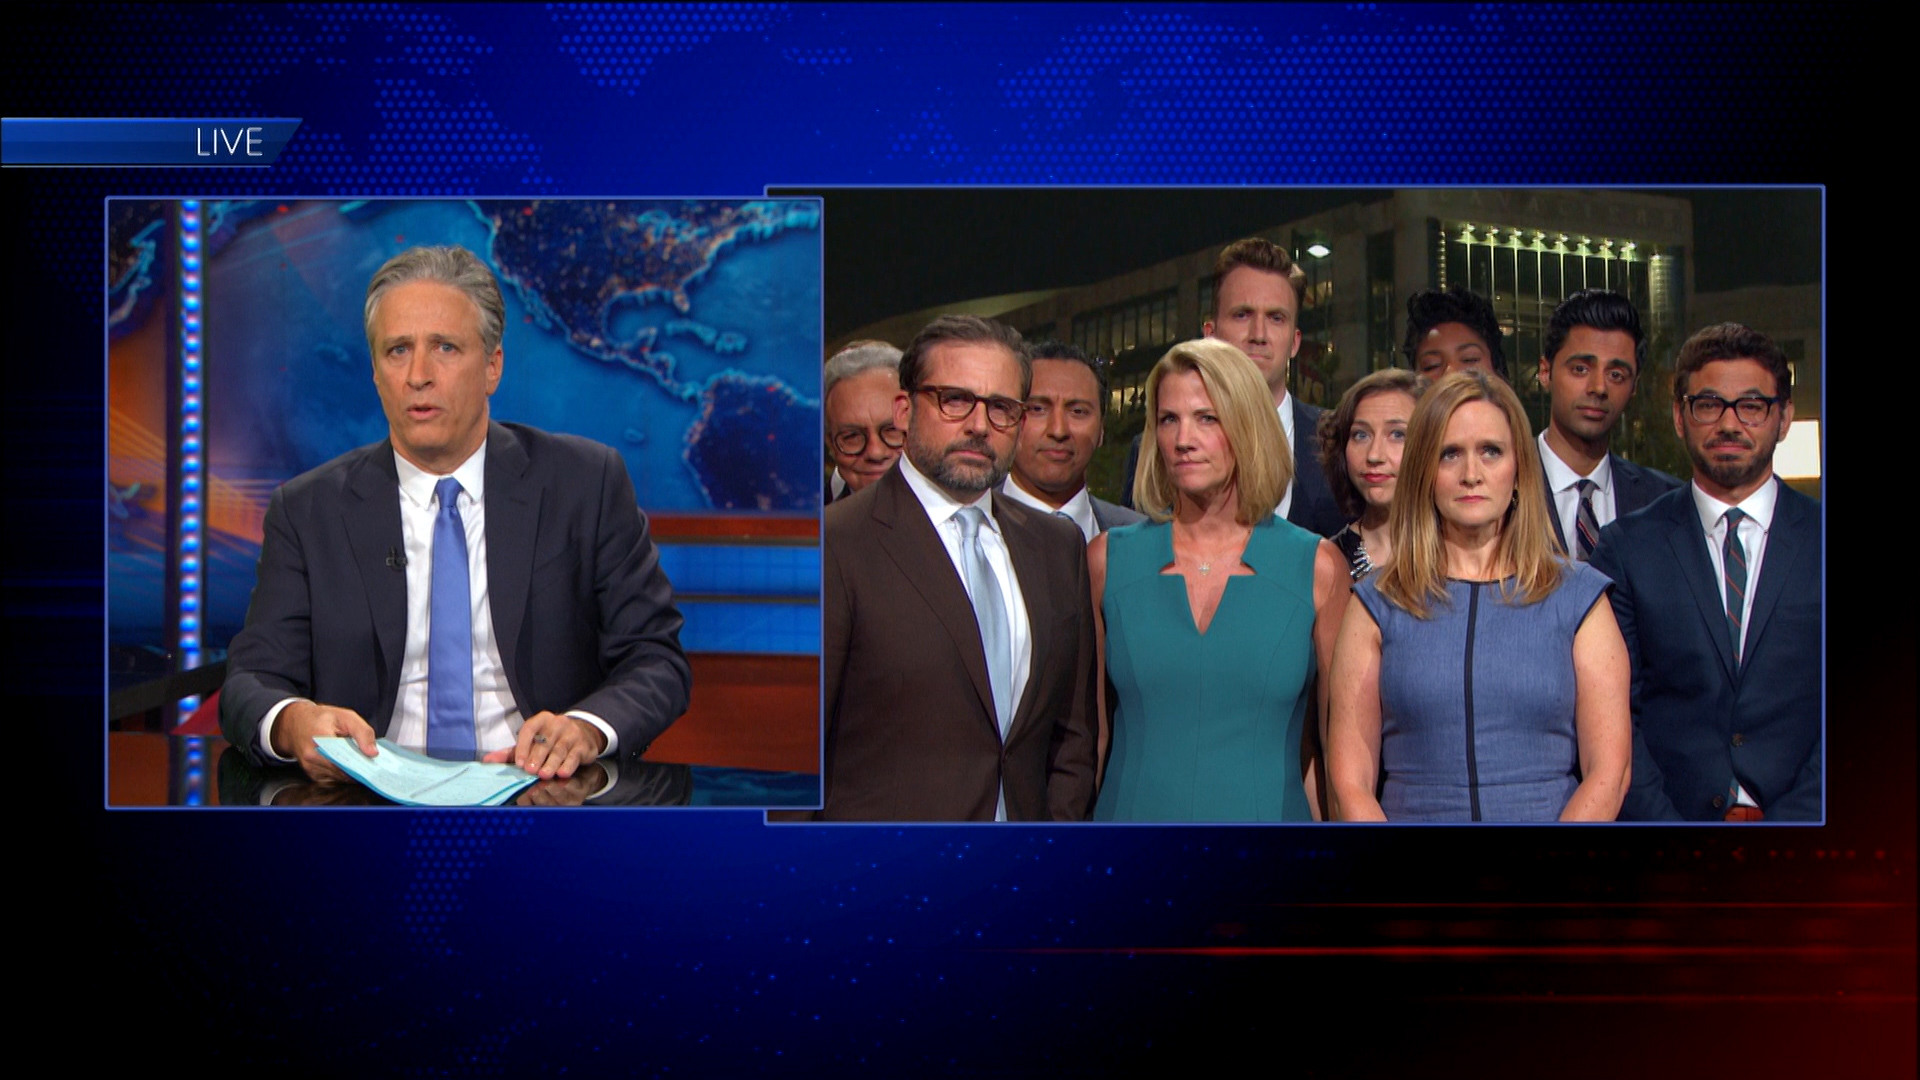 August 6, 2015 - Jon Stewart's Final Episode